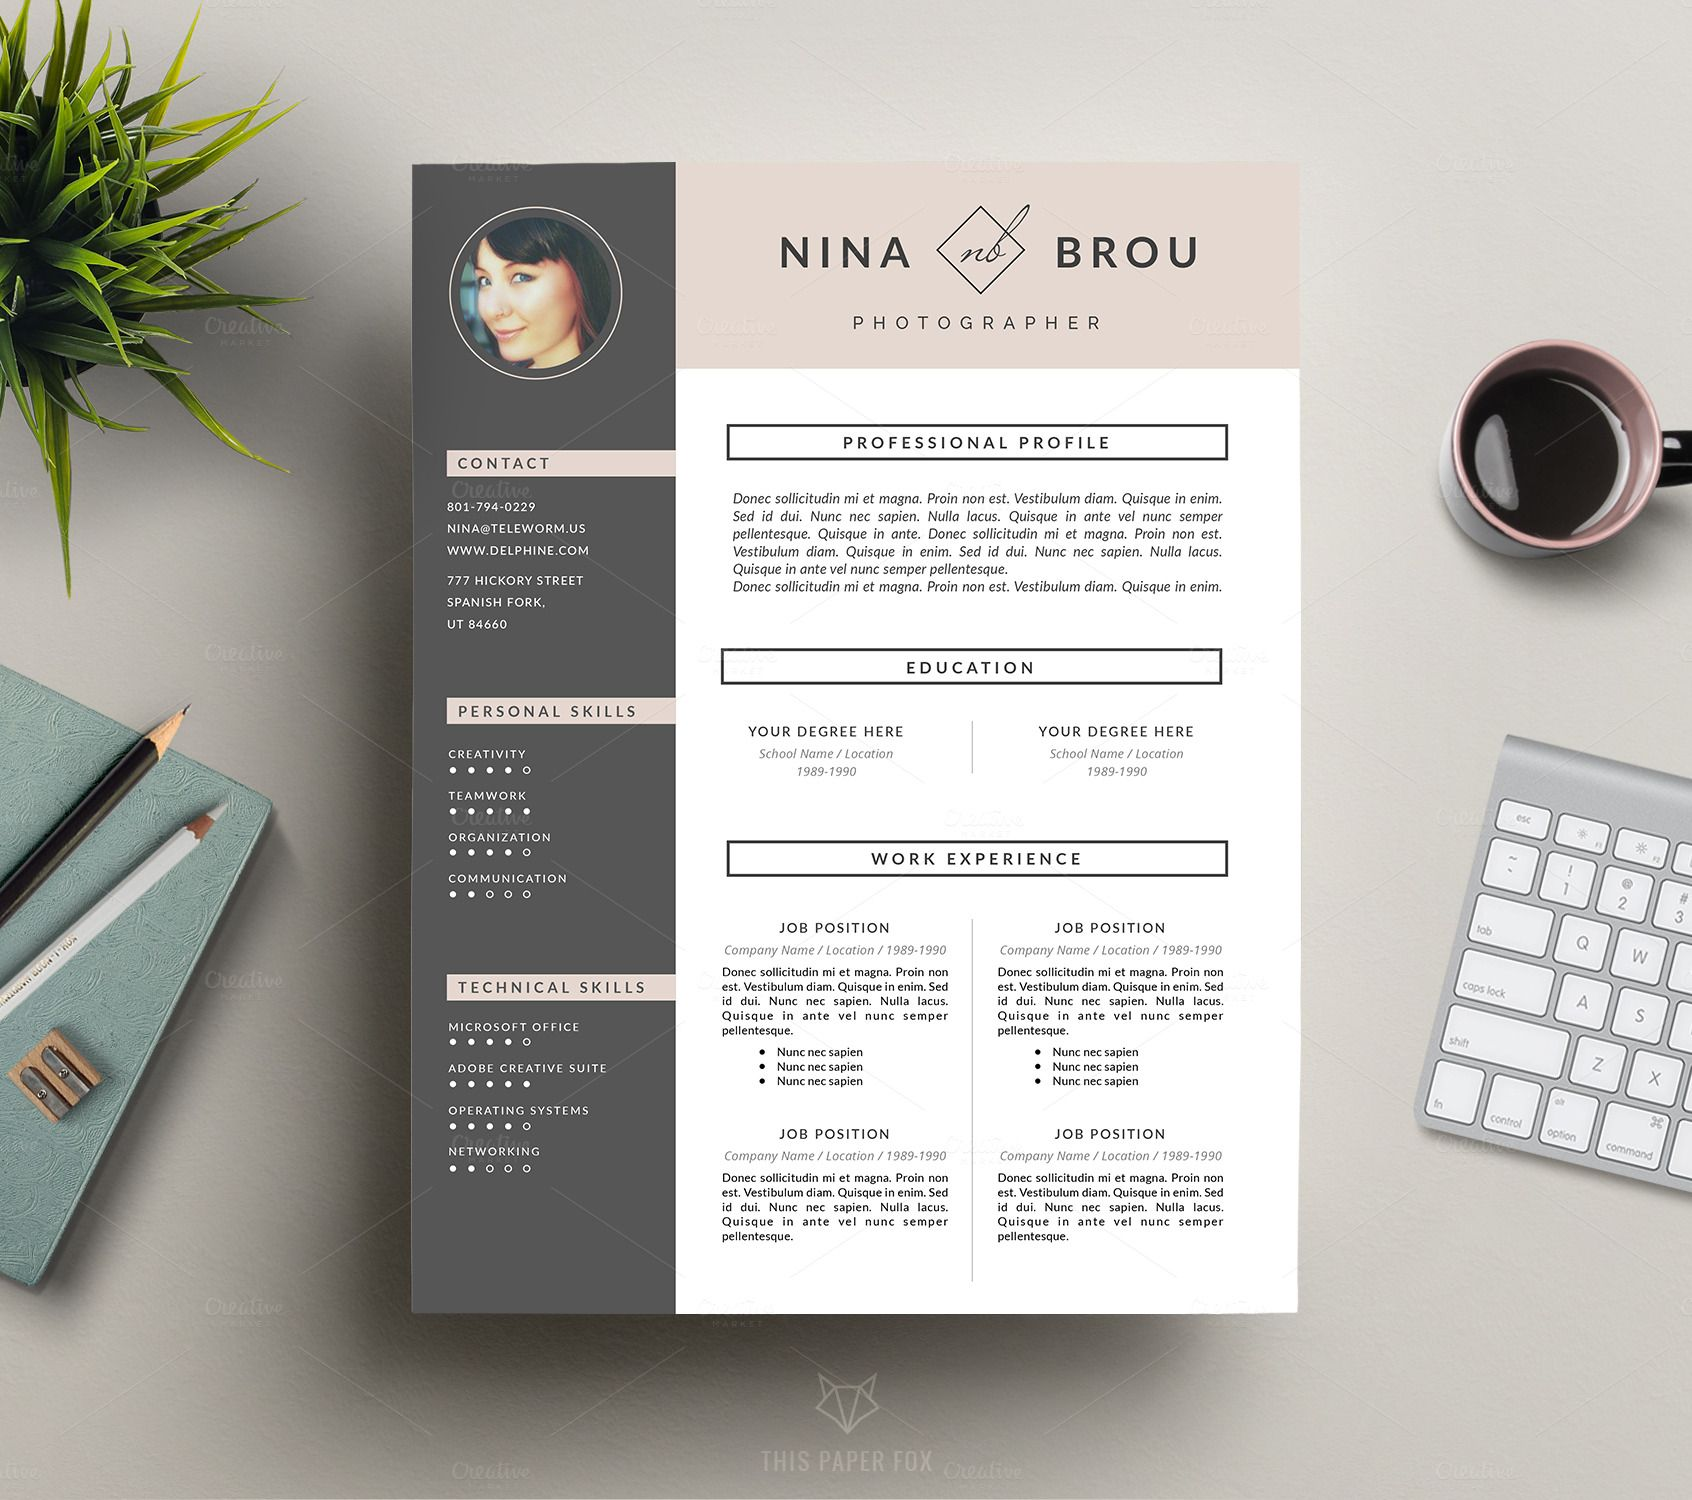 Feminine Resume Design | CV | Text layout and Branding design